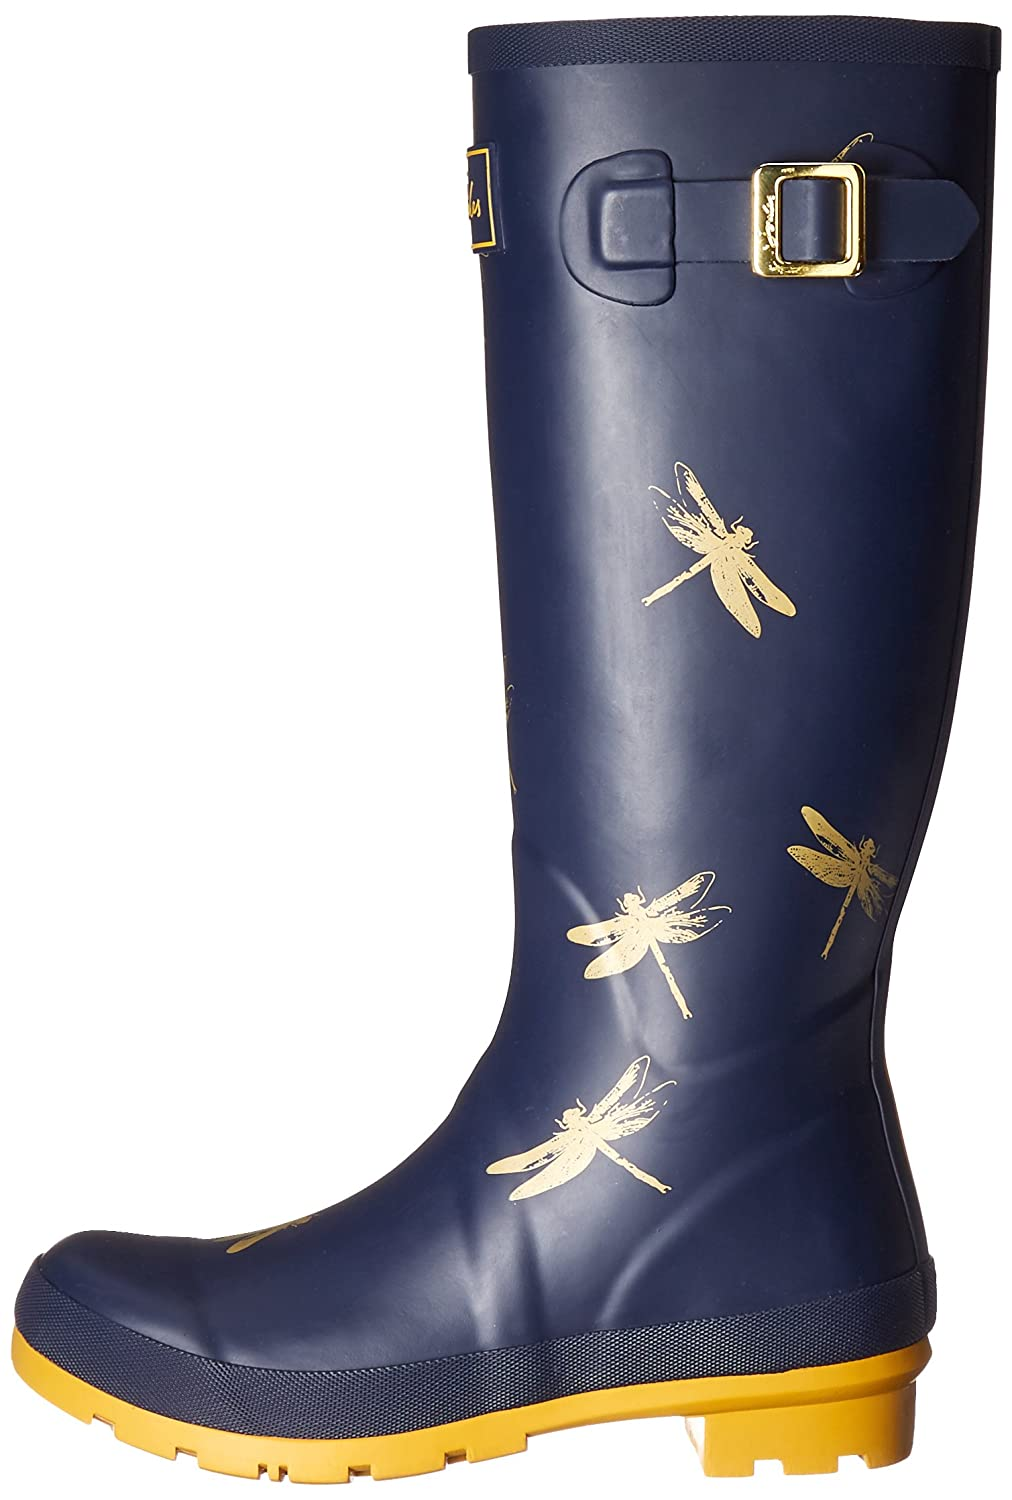 Joules Women's Welly Print Rain US|Blueprint Boot B01N3Y7OR8 6 B(M) US|Blueprint Rain Gold Dragonfly 4d0476